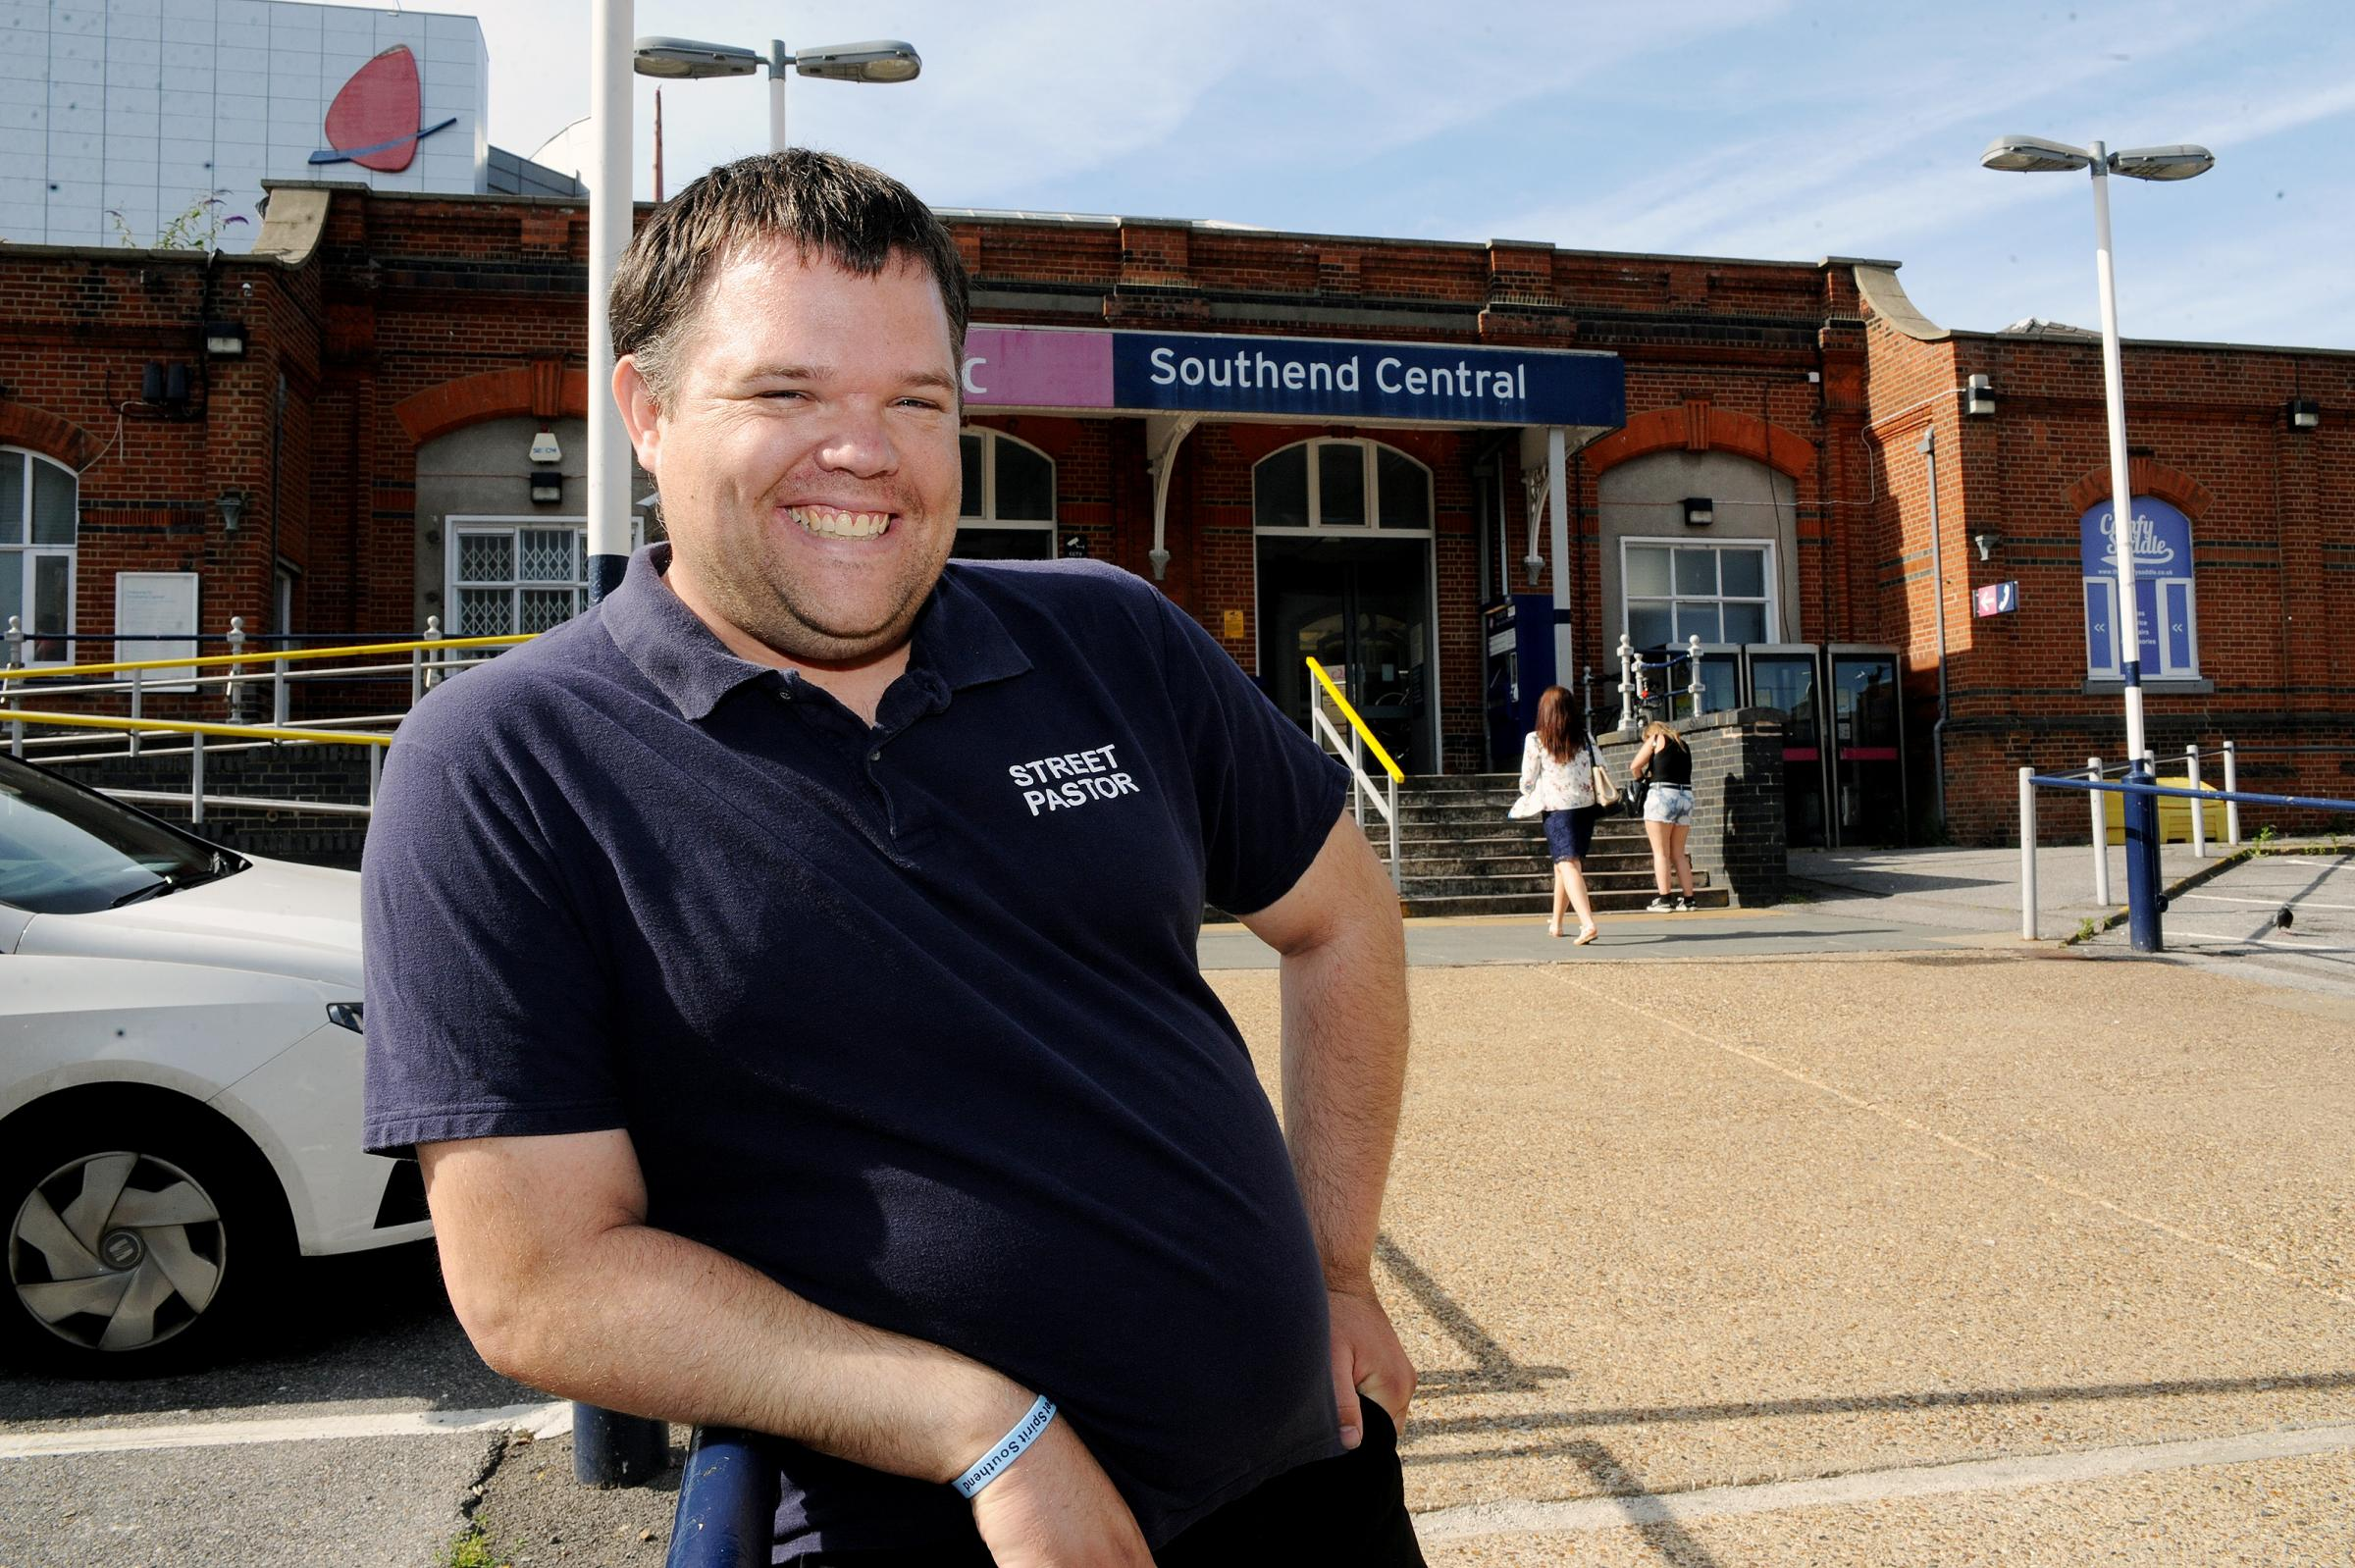 Place of safety – street pastors' leader Del Thomas at Southend Central station, where the last train leaves at 11.14pm